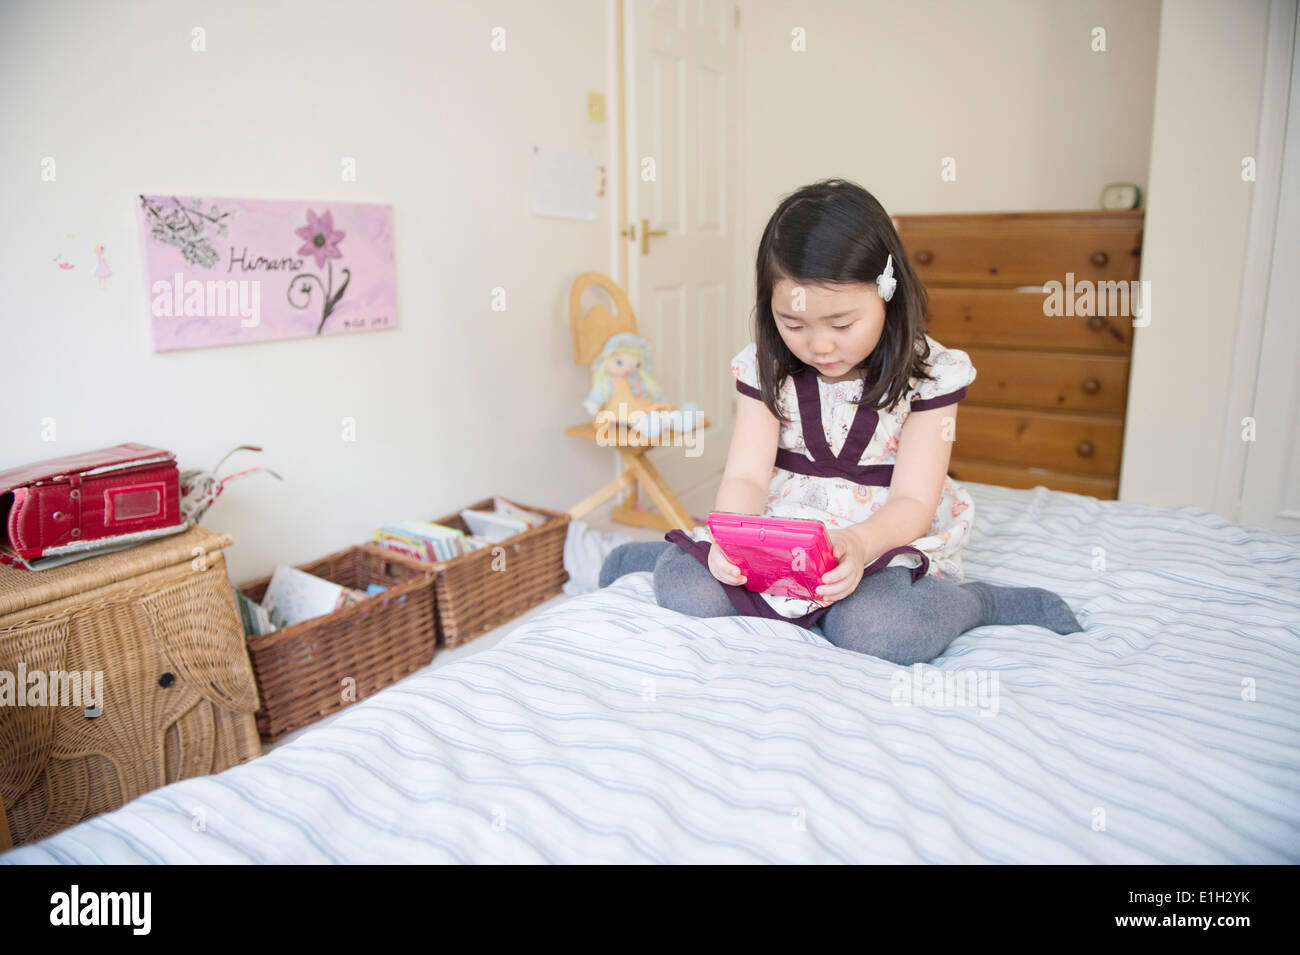 Young girl sitting on bed playing computer game - Stock Image